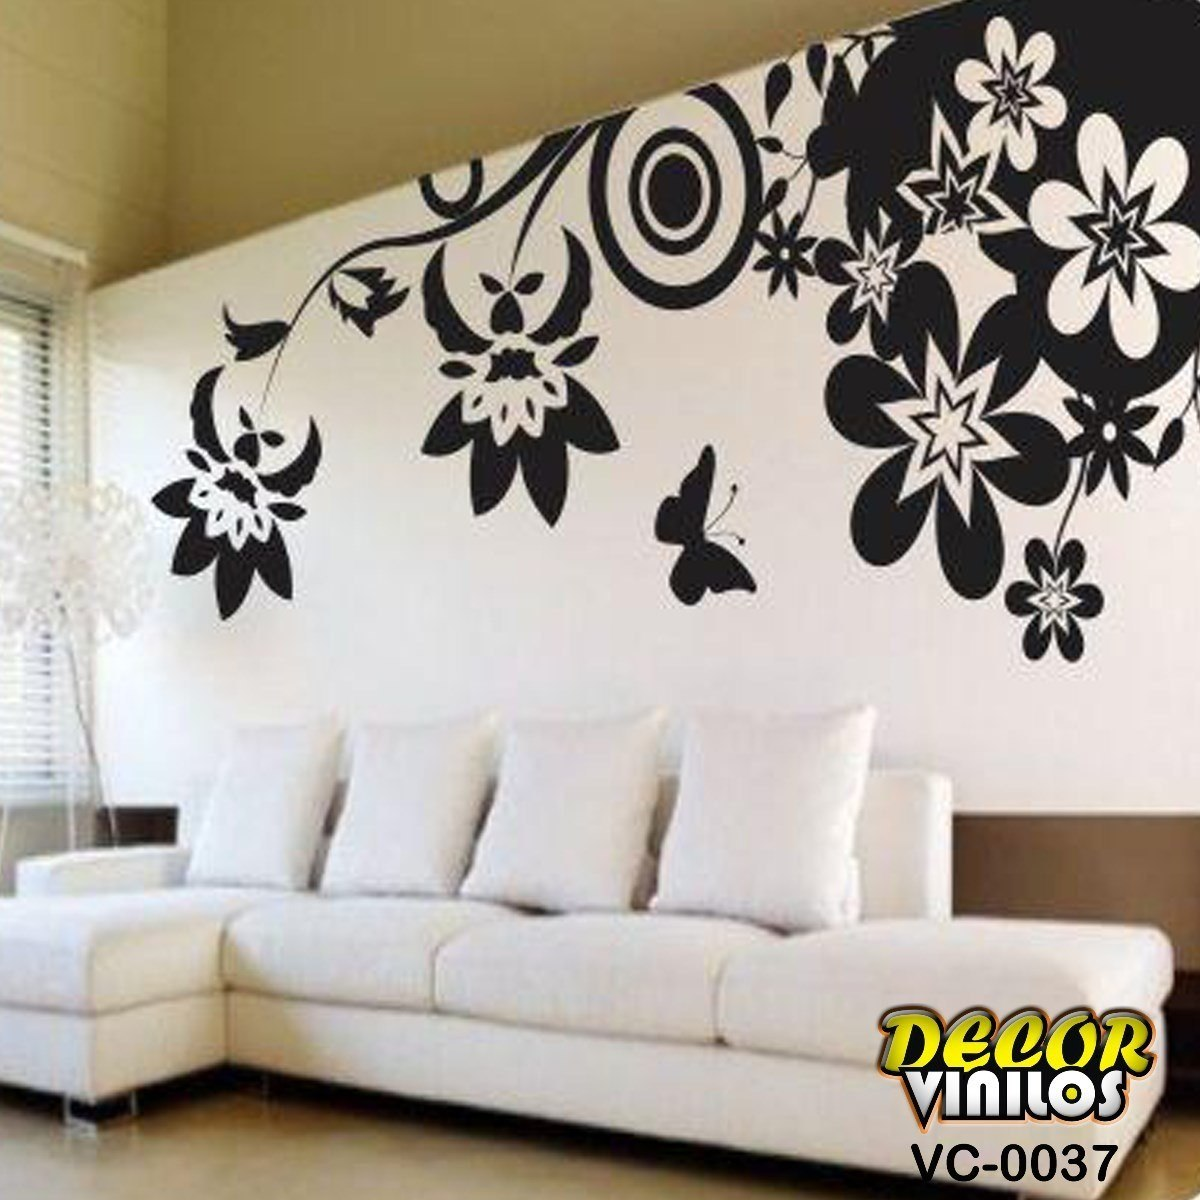 vinilos decorativos pared vinilos pared vinilos para